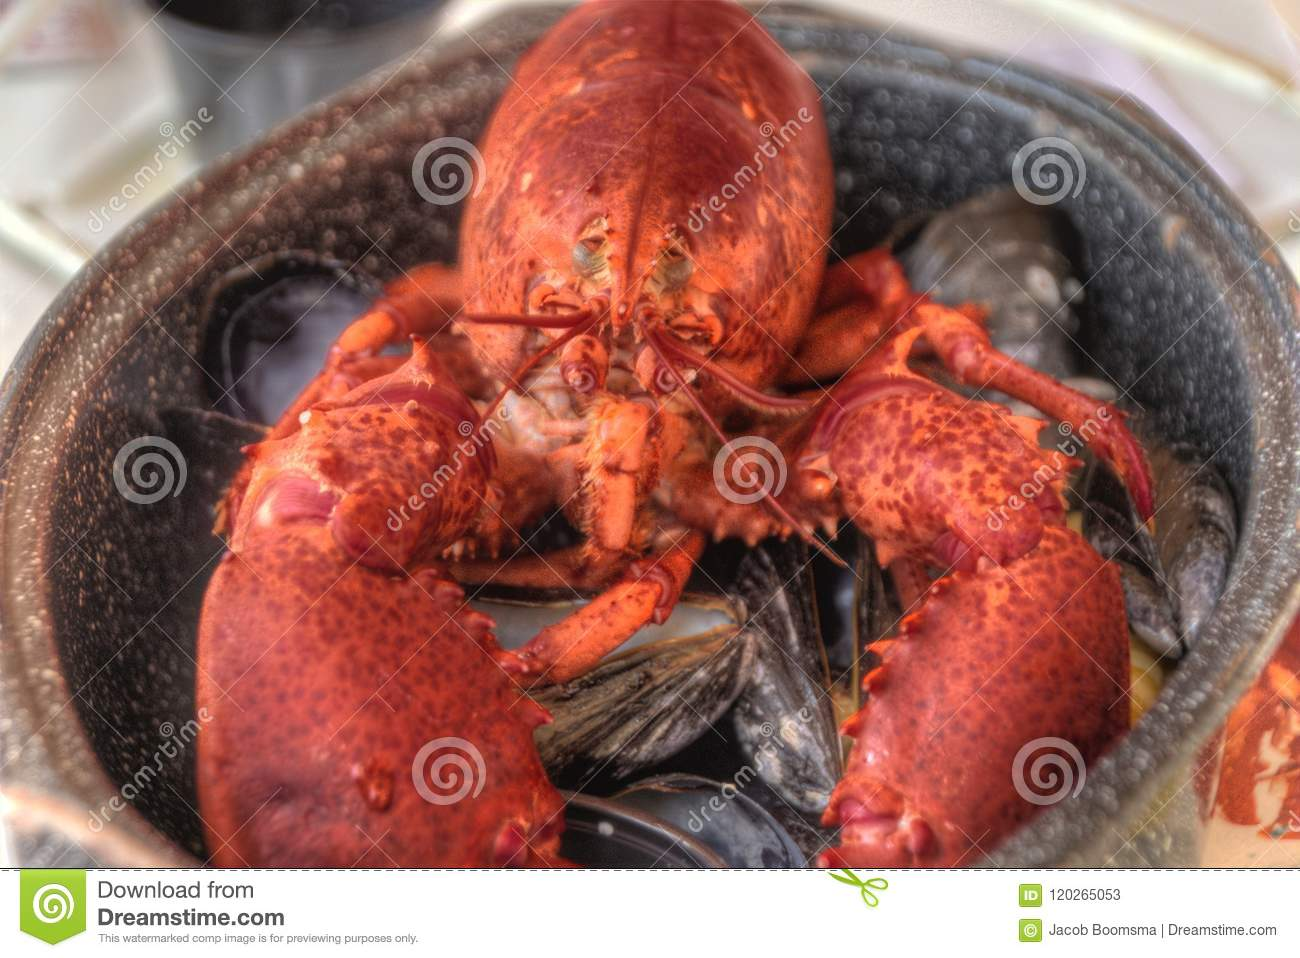 Whole Grilled Lobster with Mussel Shellfish in a Pot